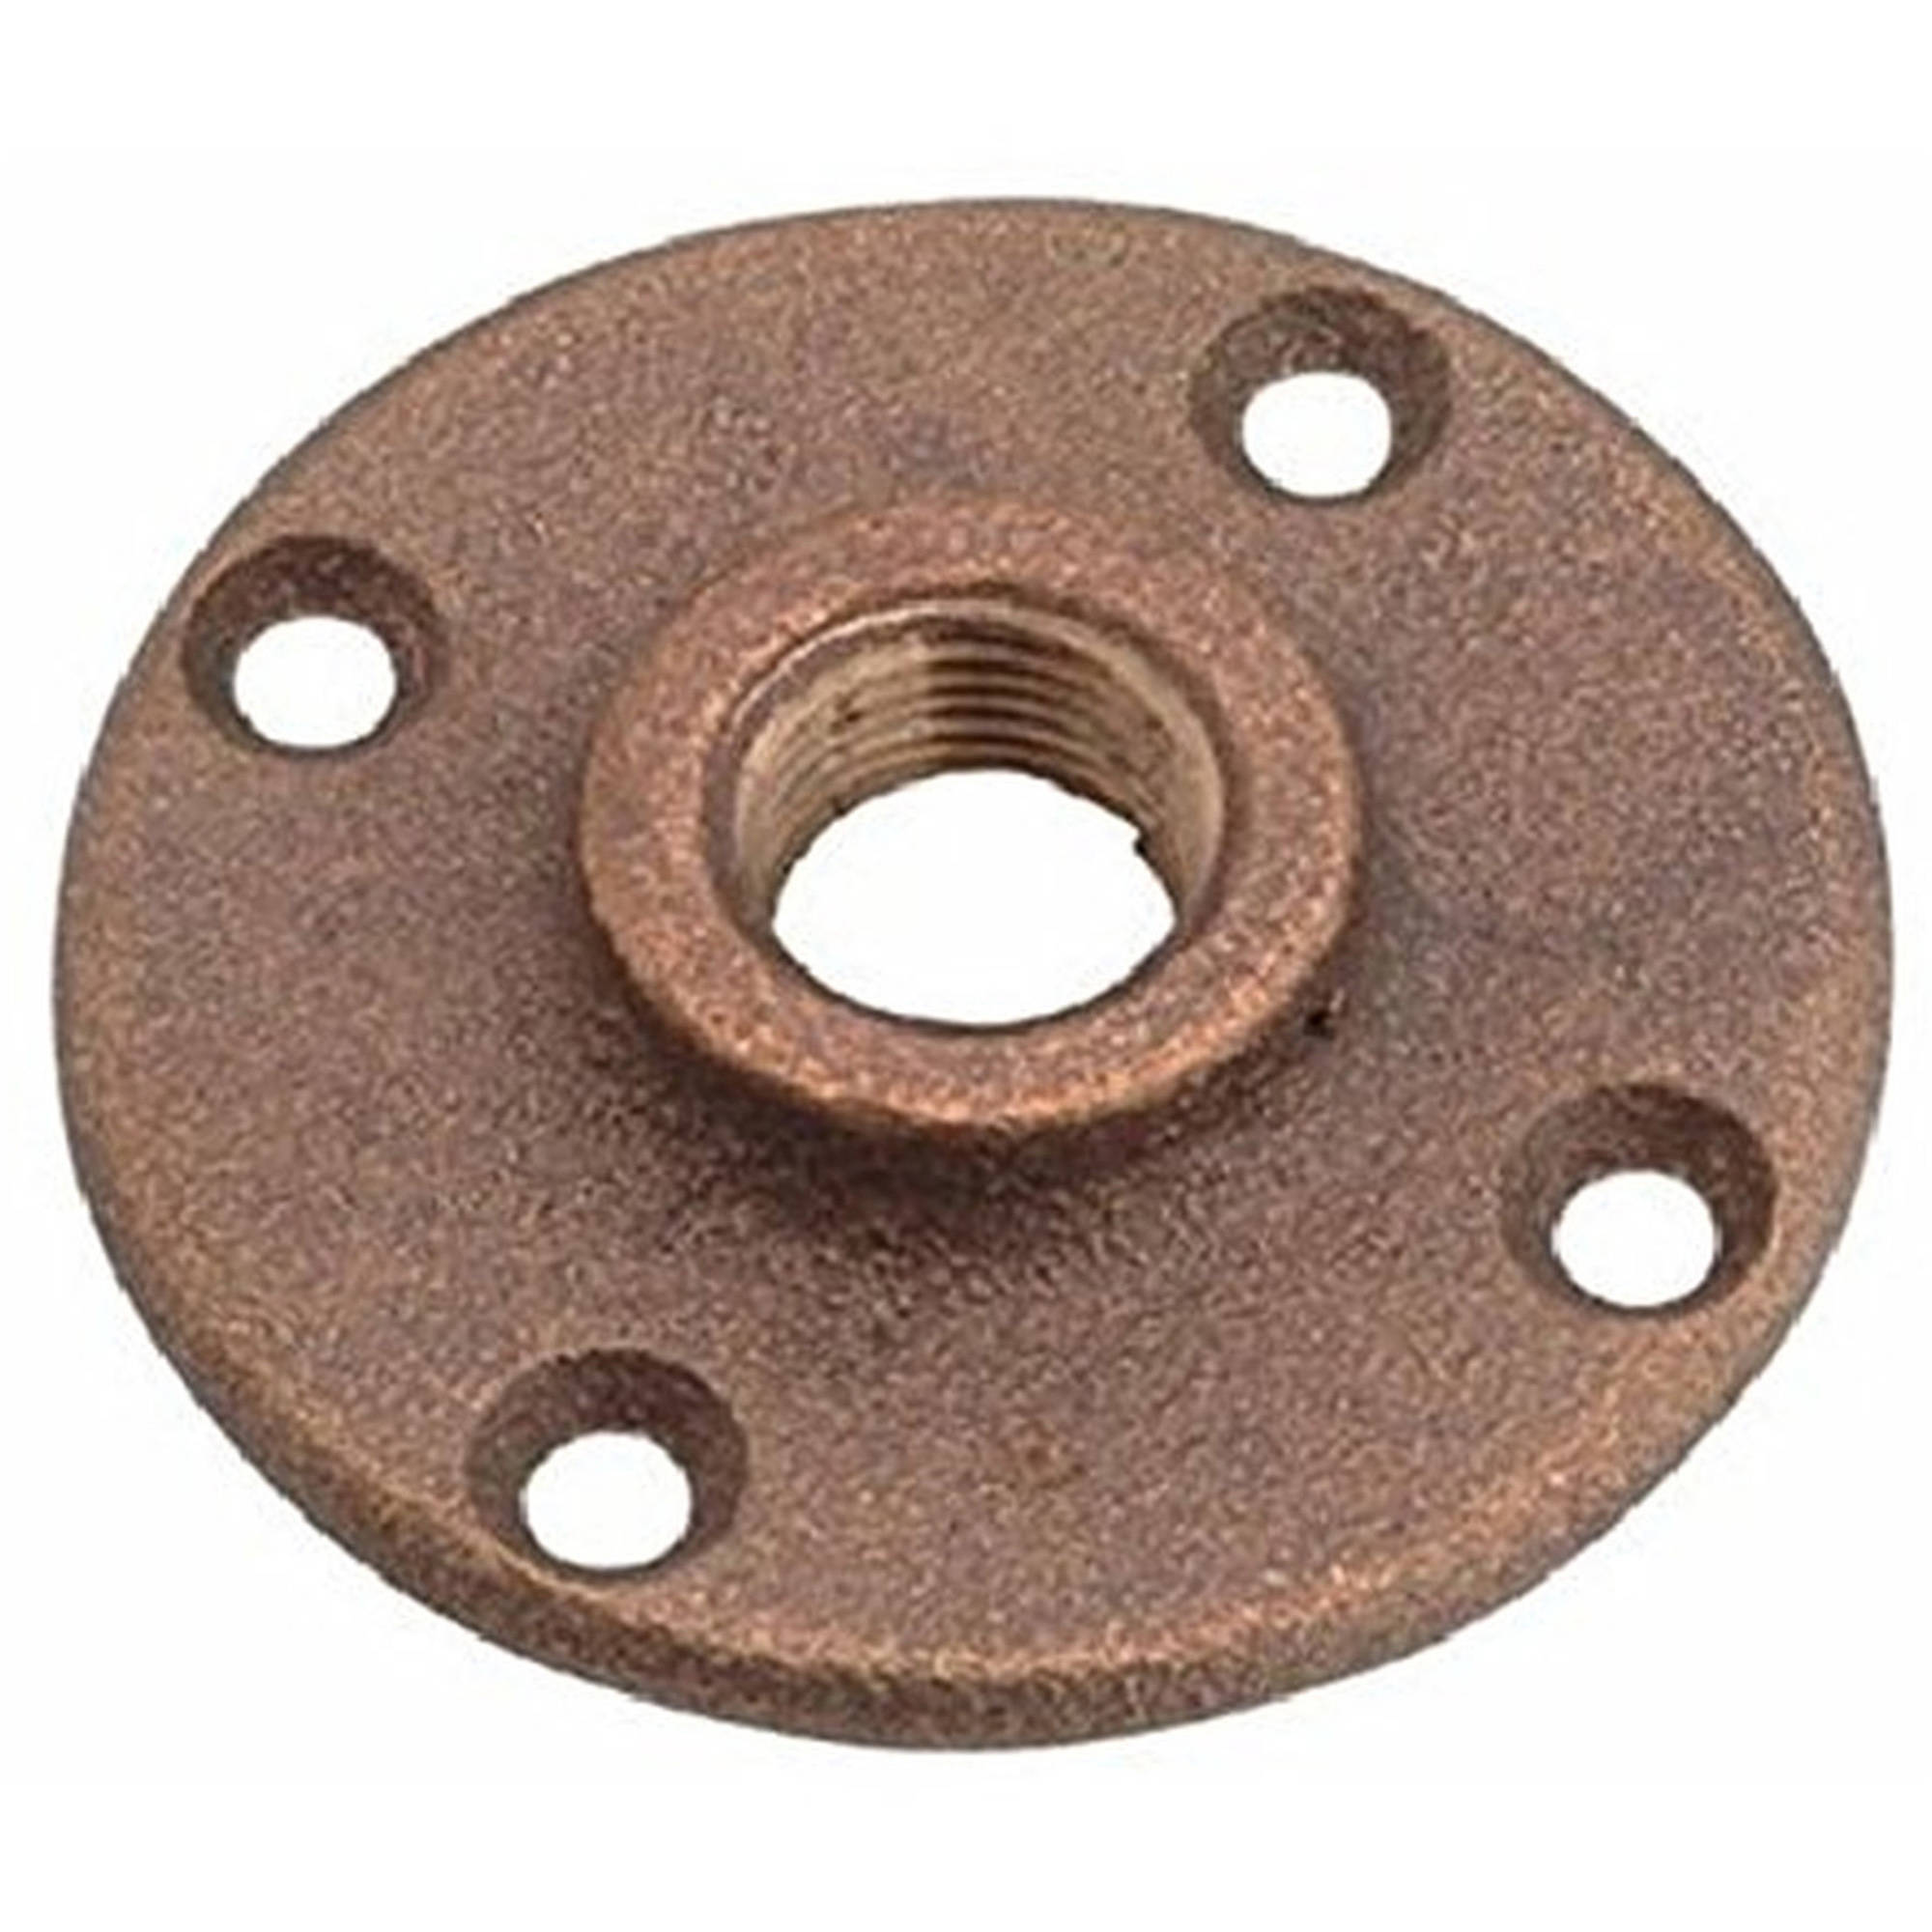 "Everflow Supplies BRFF0100-NL 1"" Threaded Brass Floor Flange with Holes, Lead Free"